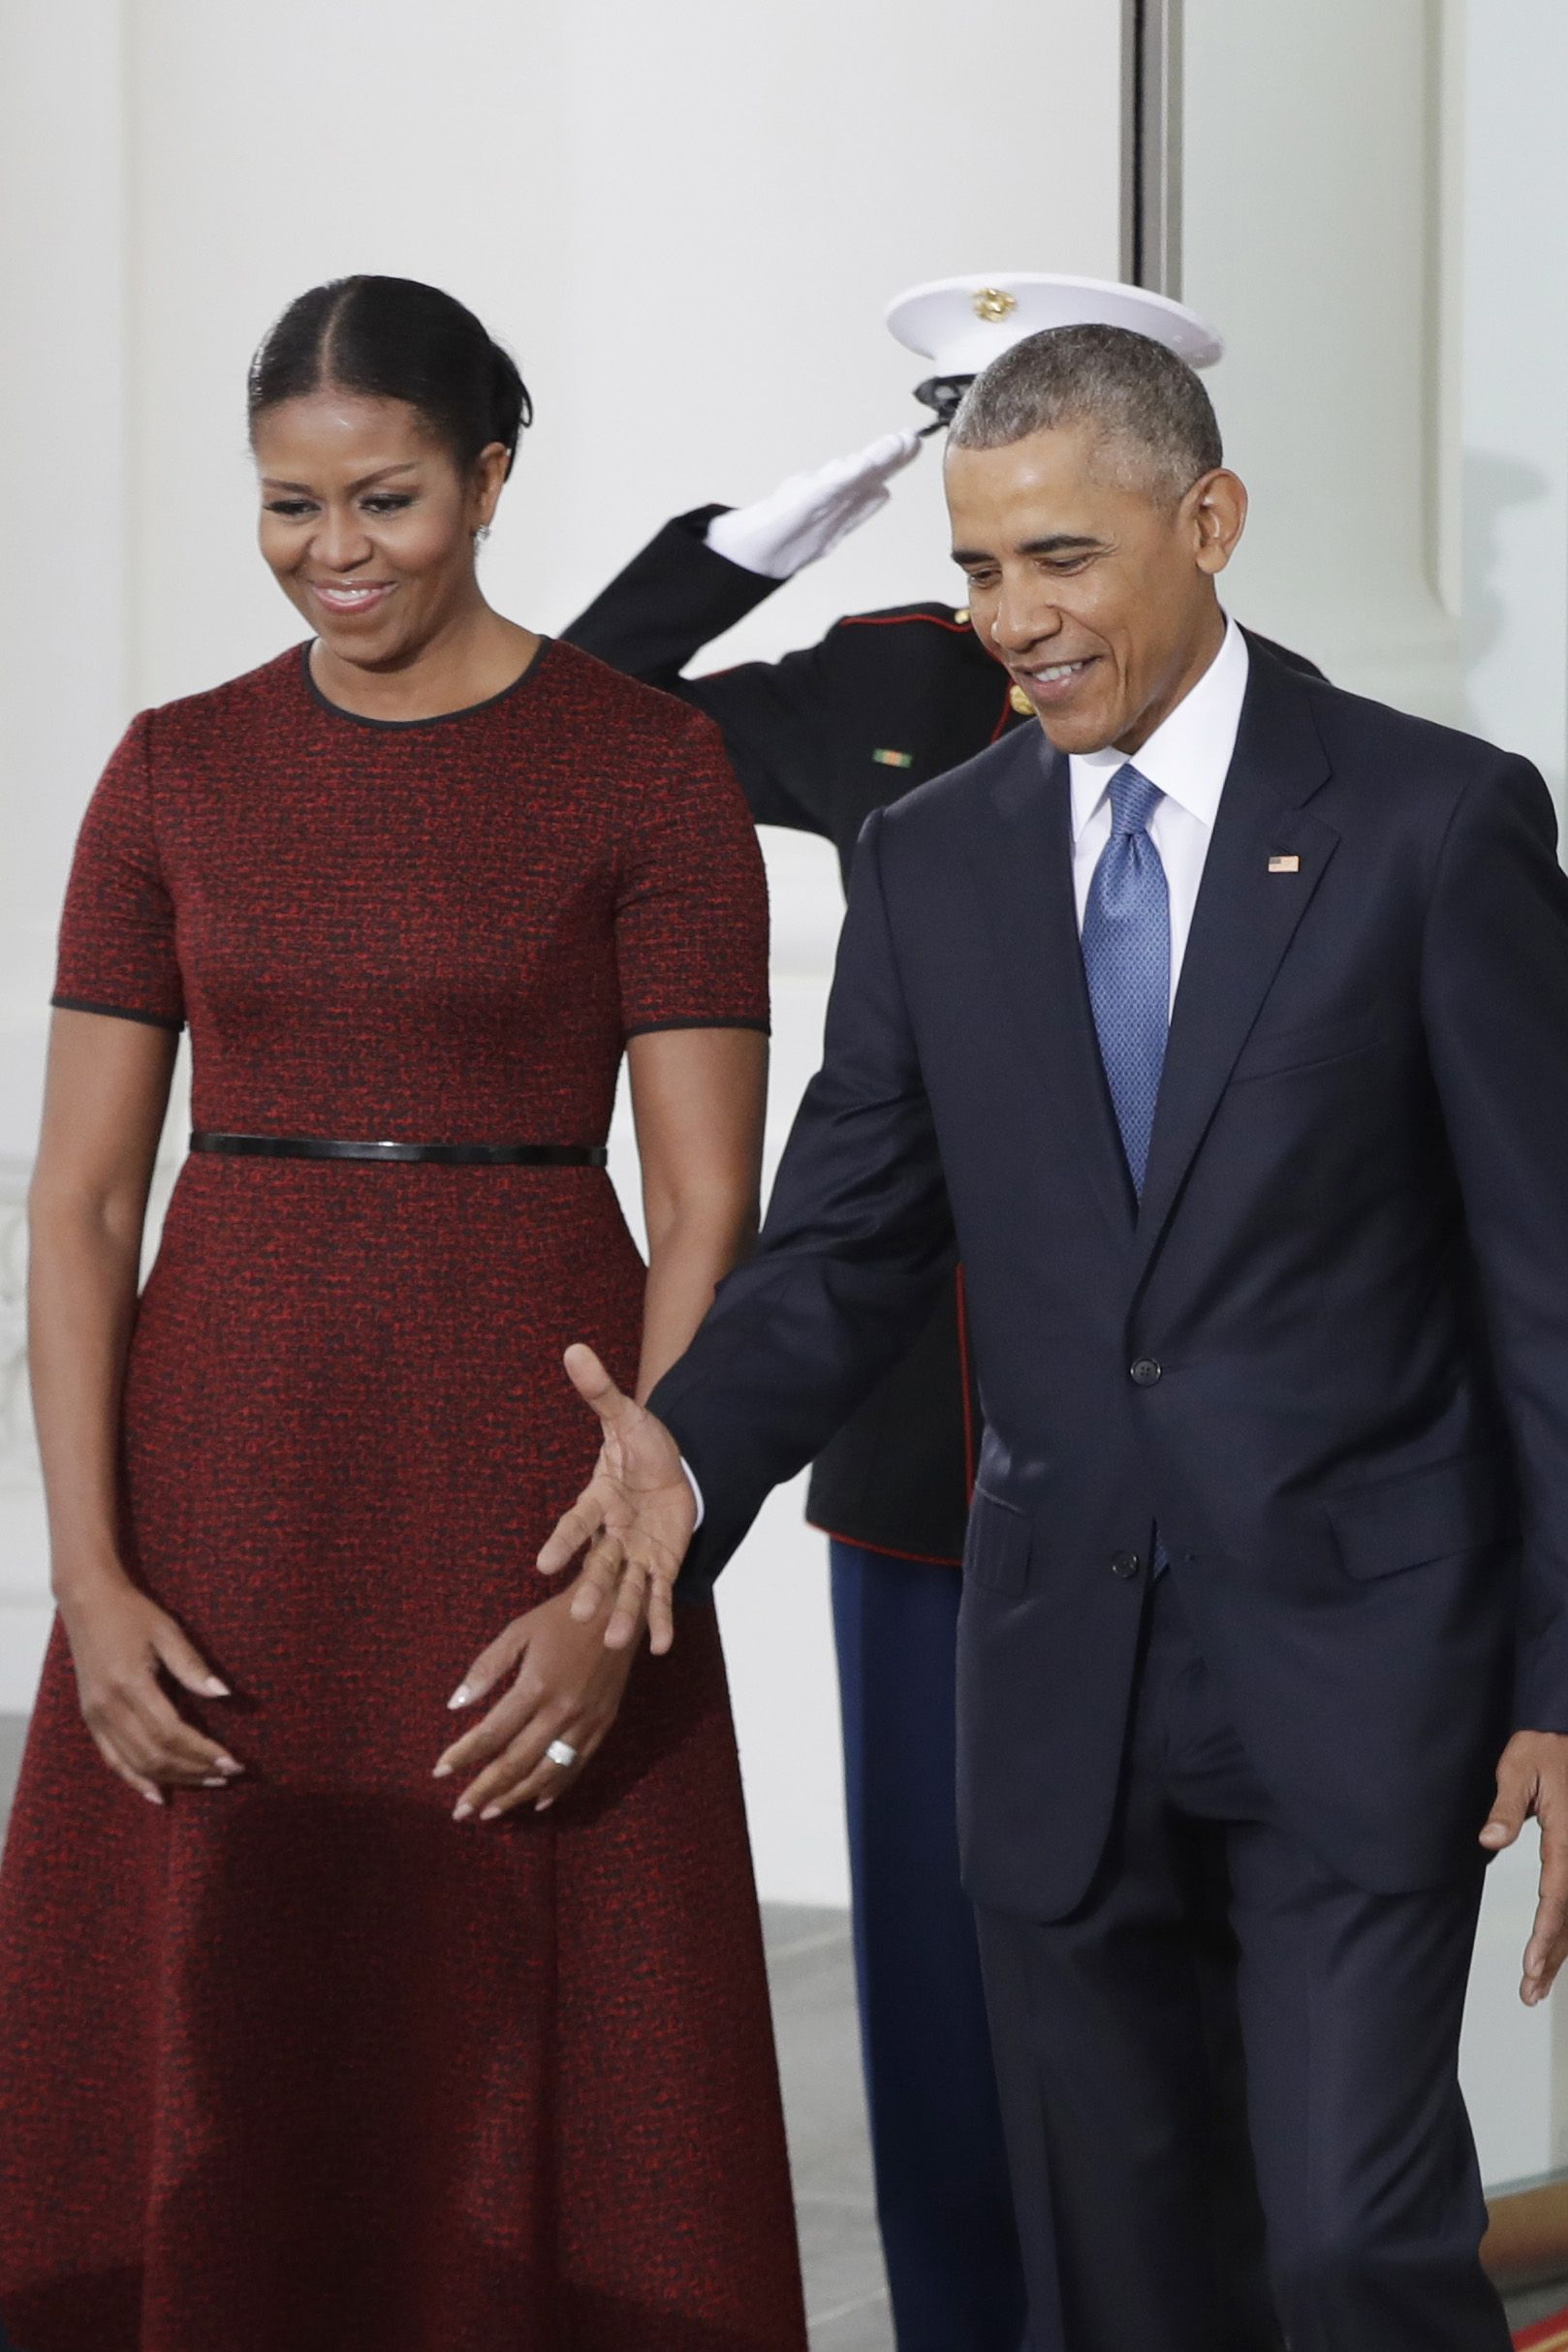 Barack and Michelle Obama's Book Deal Sells For A Record $65 Million